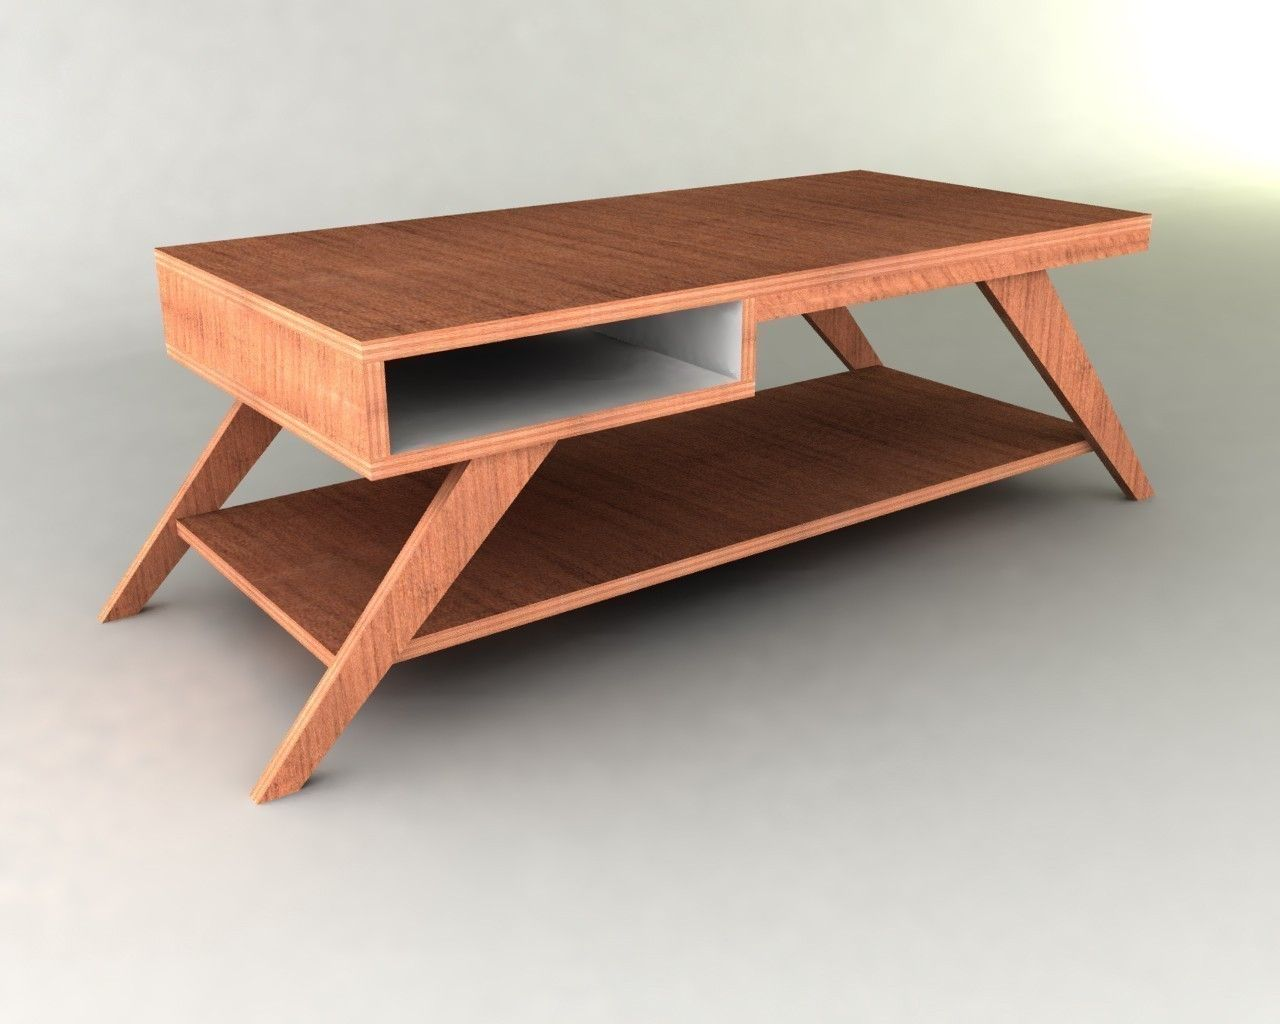 Charmant 5 Ideas For A Do It Yourself Coffee Table, Letu0027s Do It!